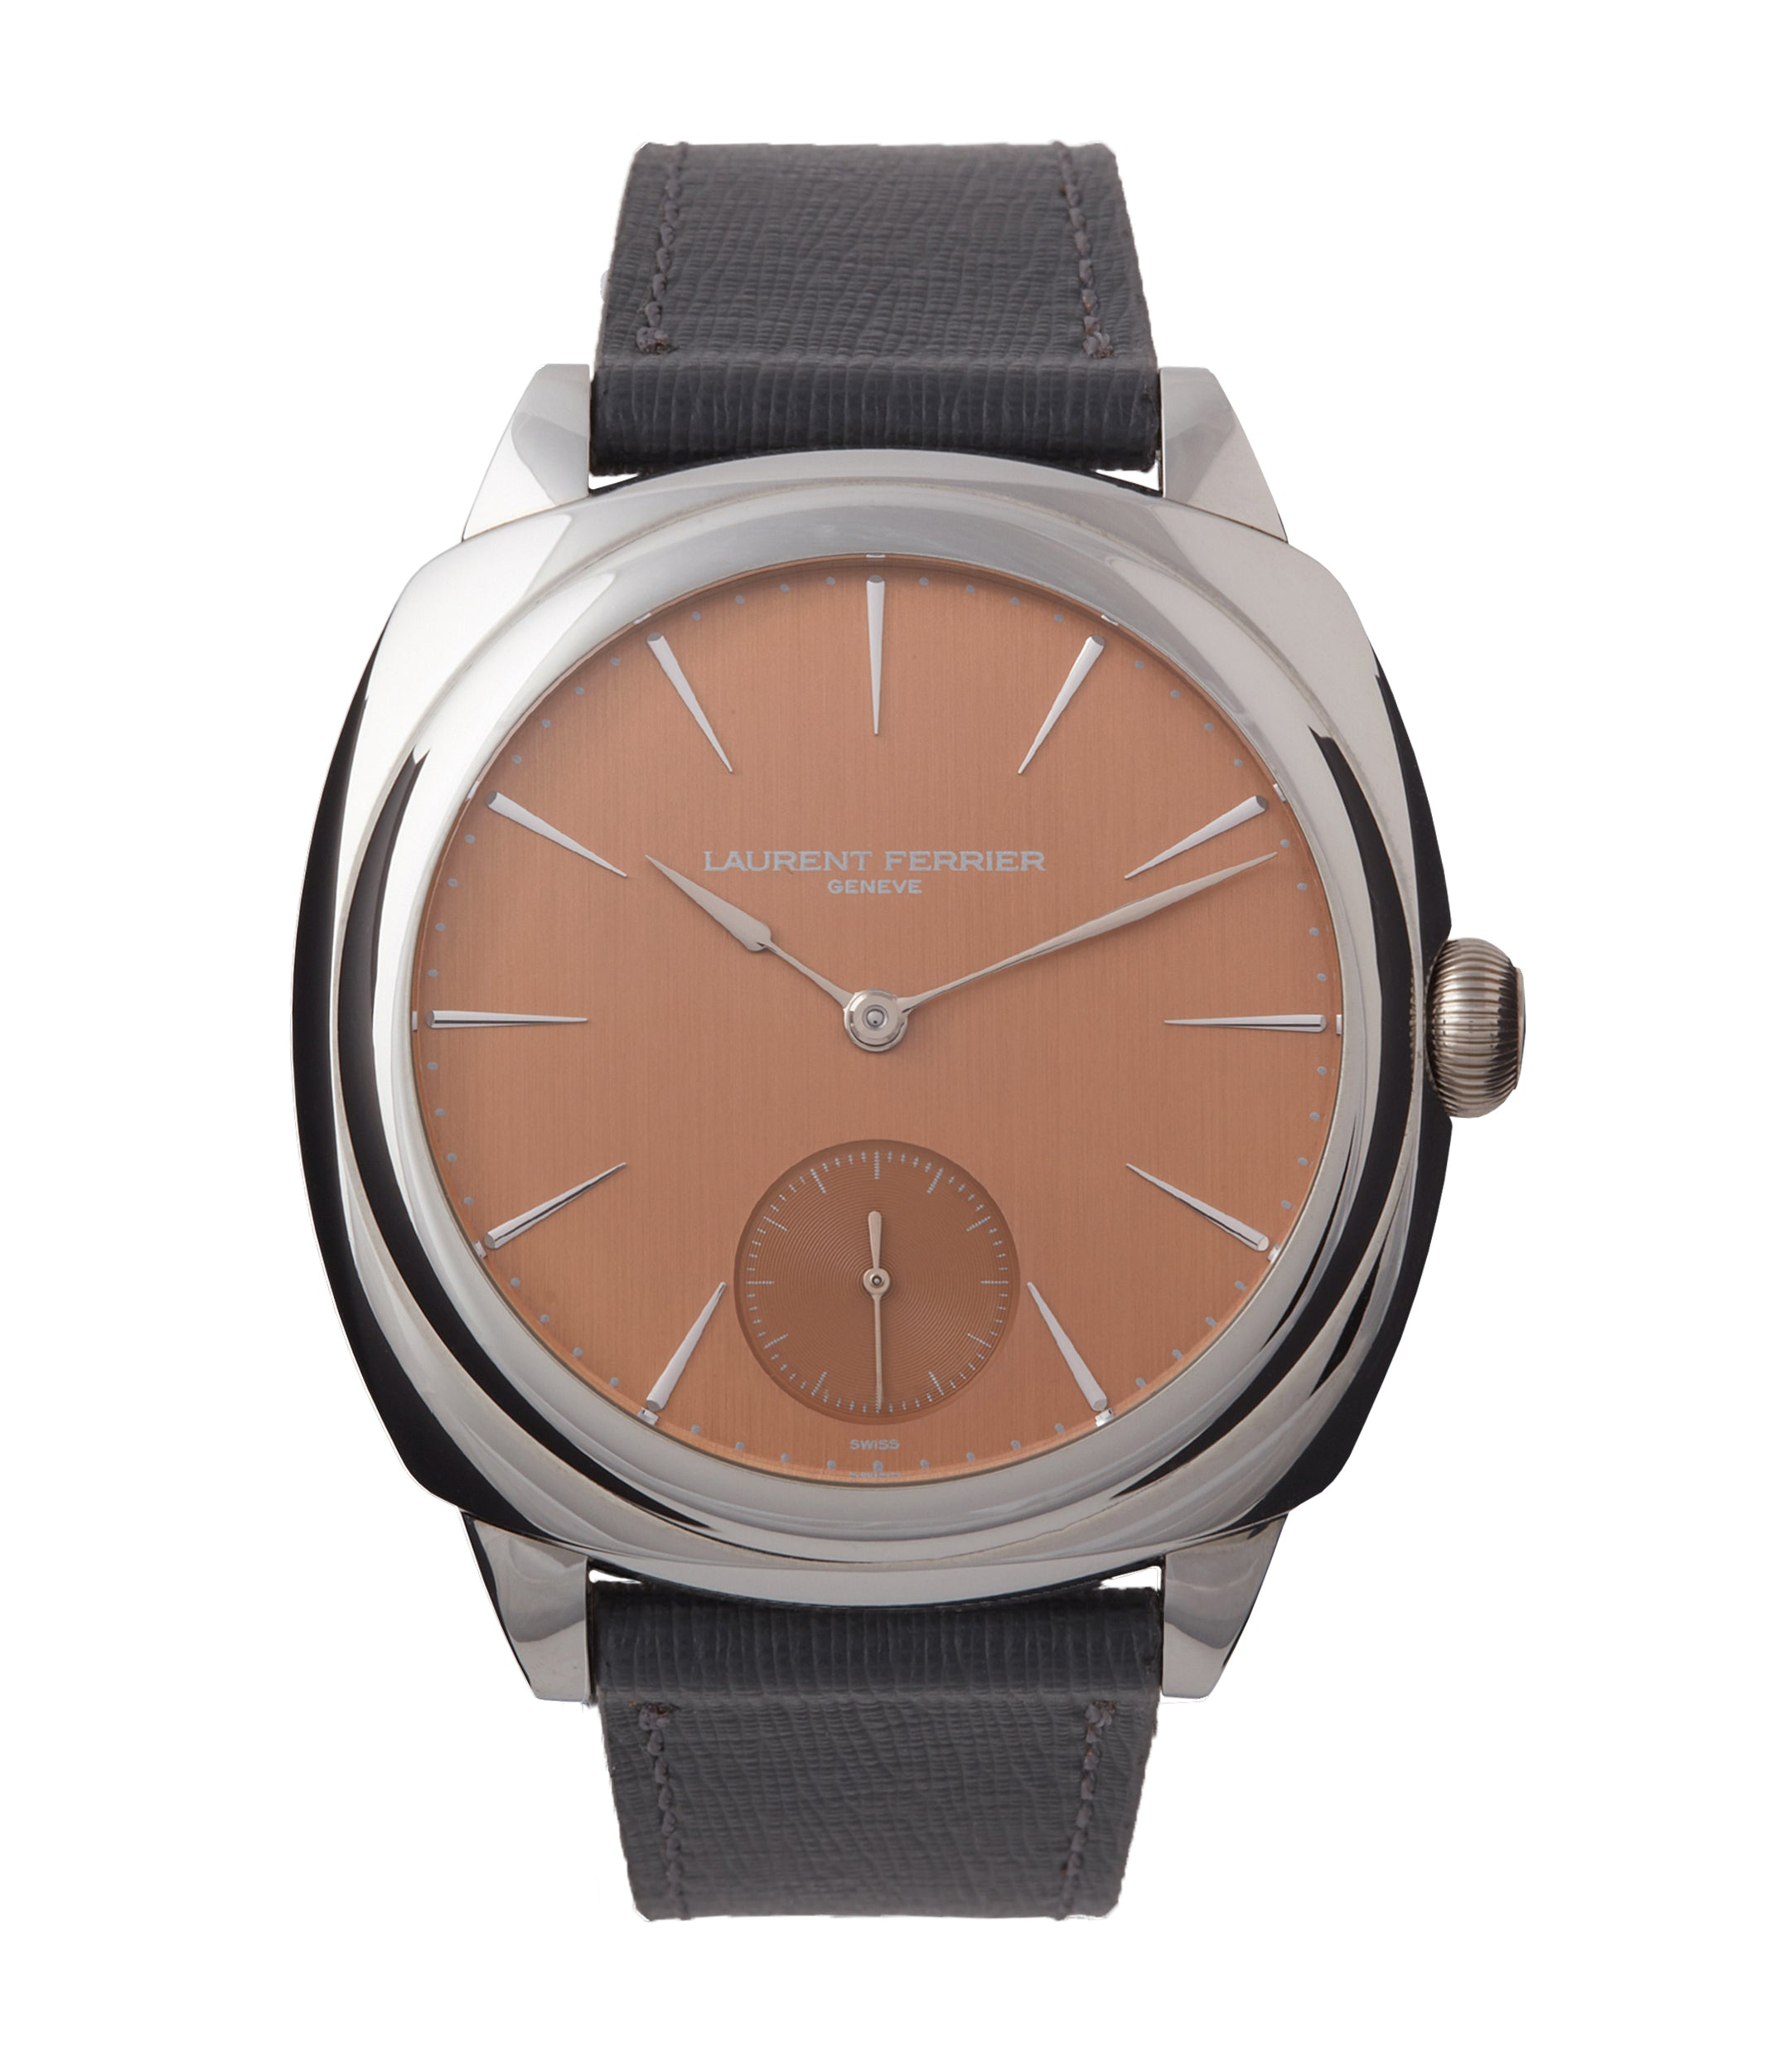 buy Laurent Ferrier Galet Square Micro-rotor salmon dial steel pre-owned watch for sale online at A Collected Man London UK specialist of independent watchmakers